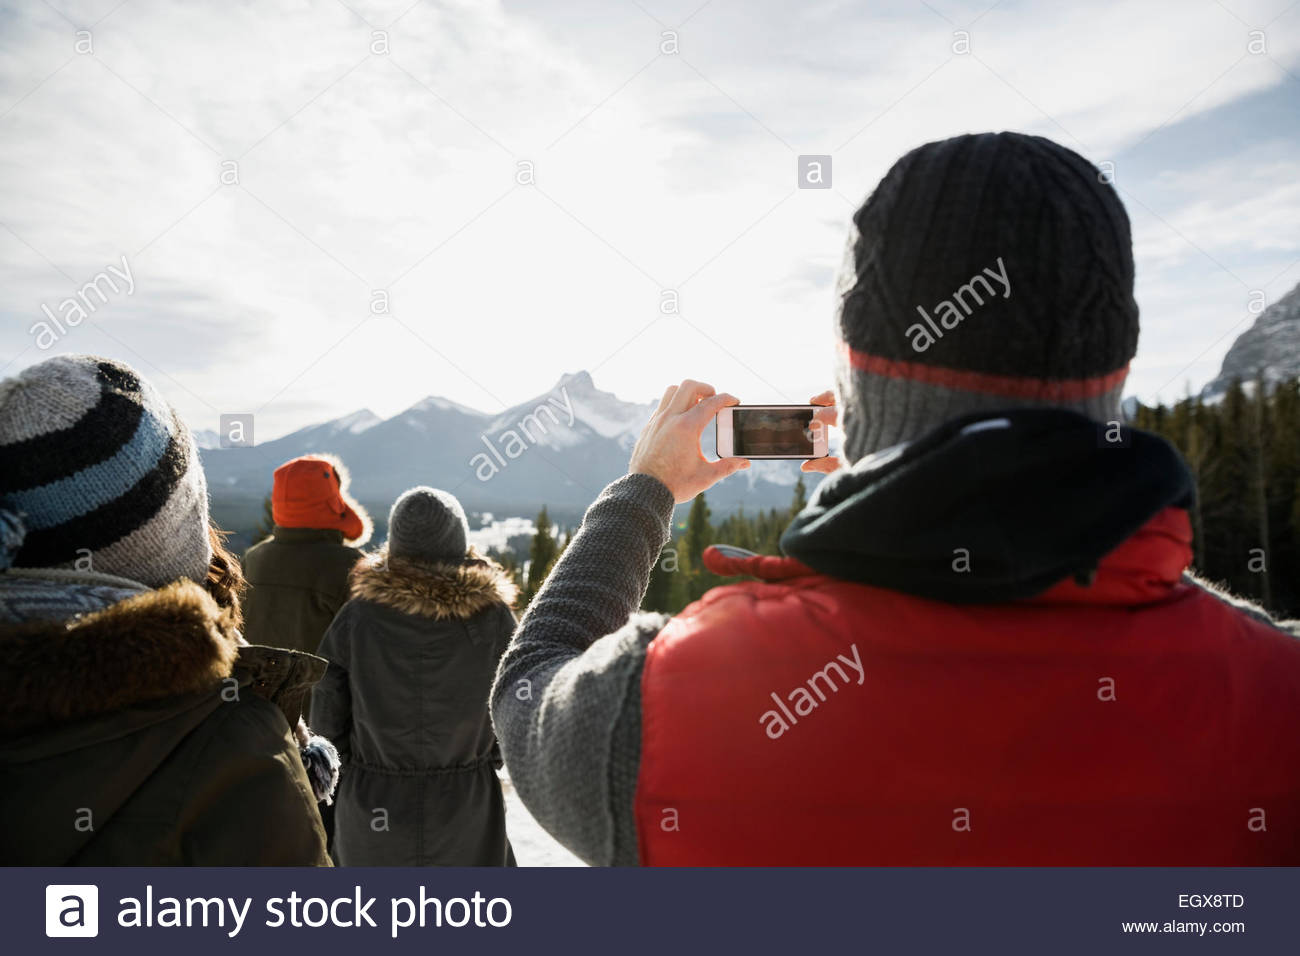 Man with camera phone photographing snowy mountains - Stock Image